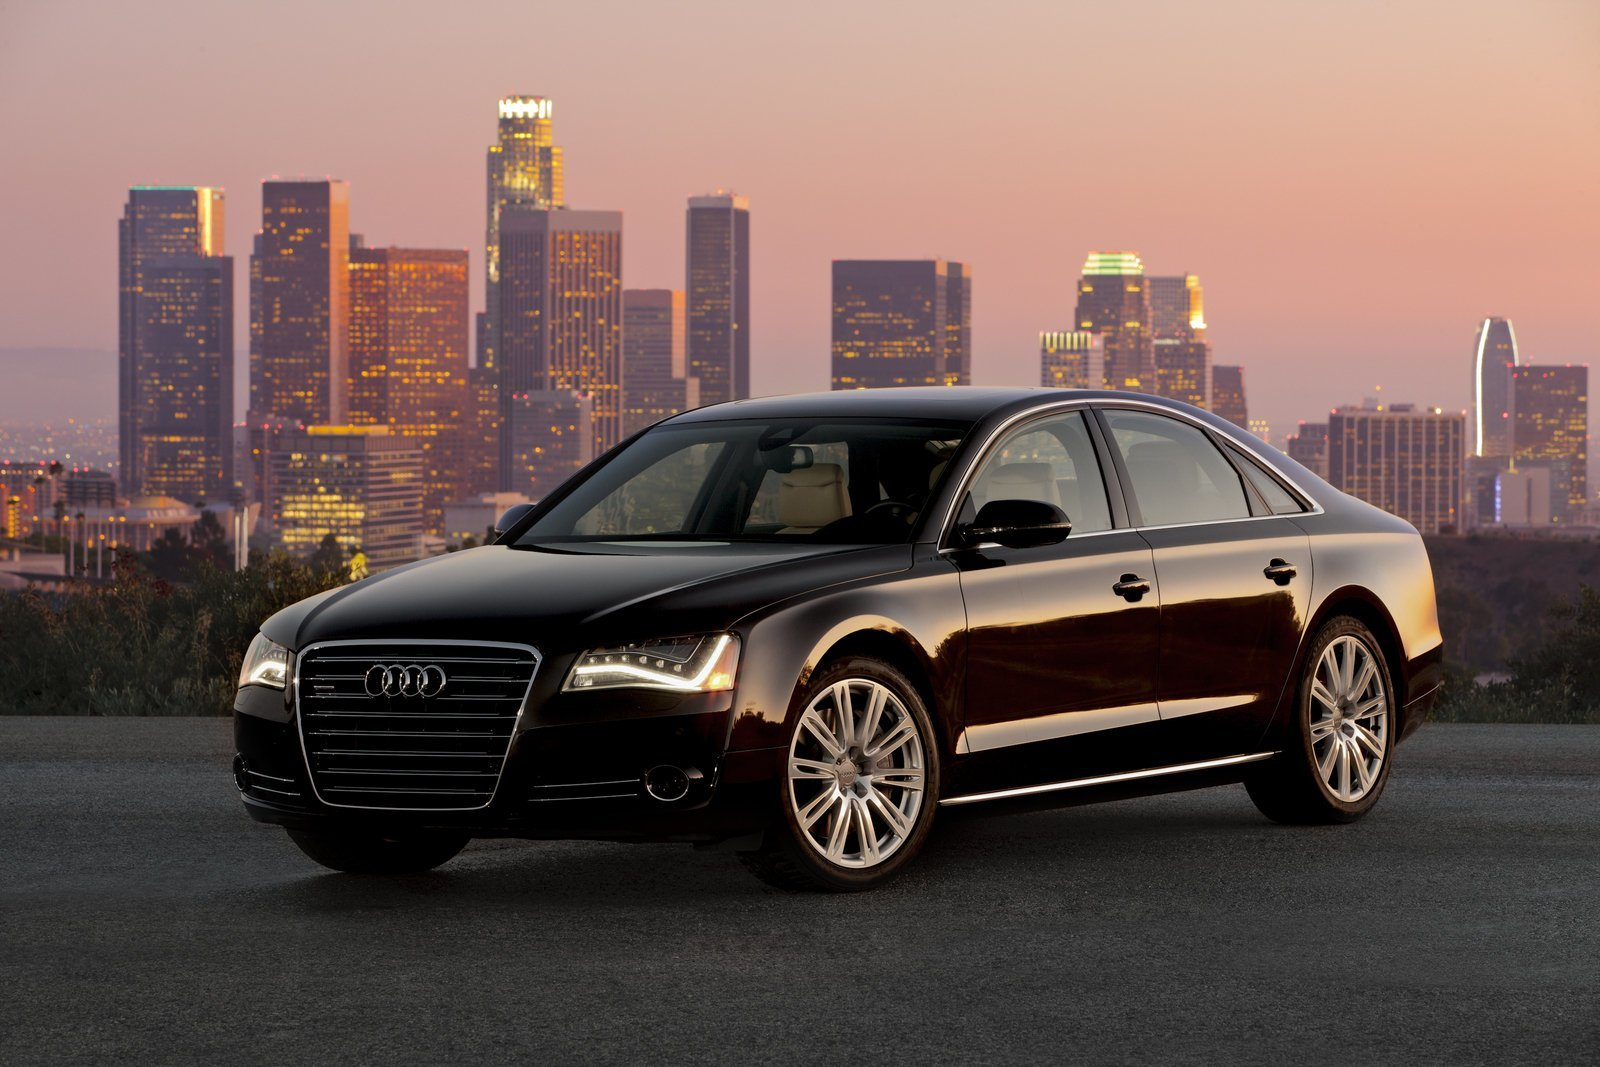 New 2014 Audi A8 Top Speed On This Month